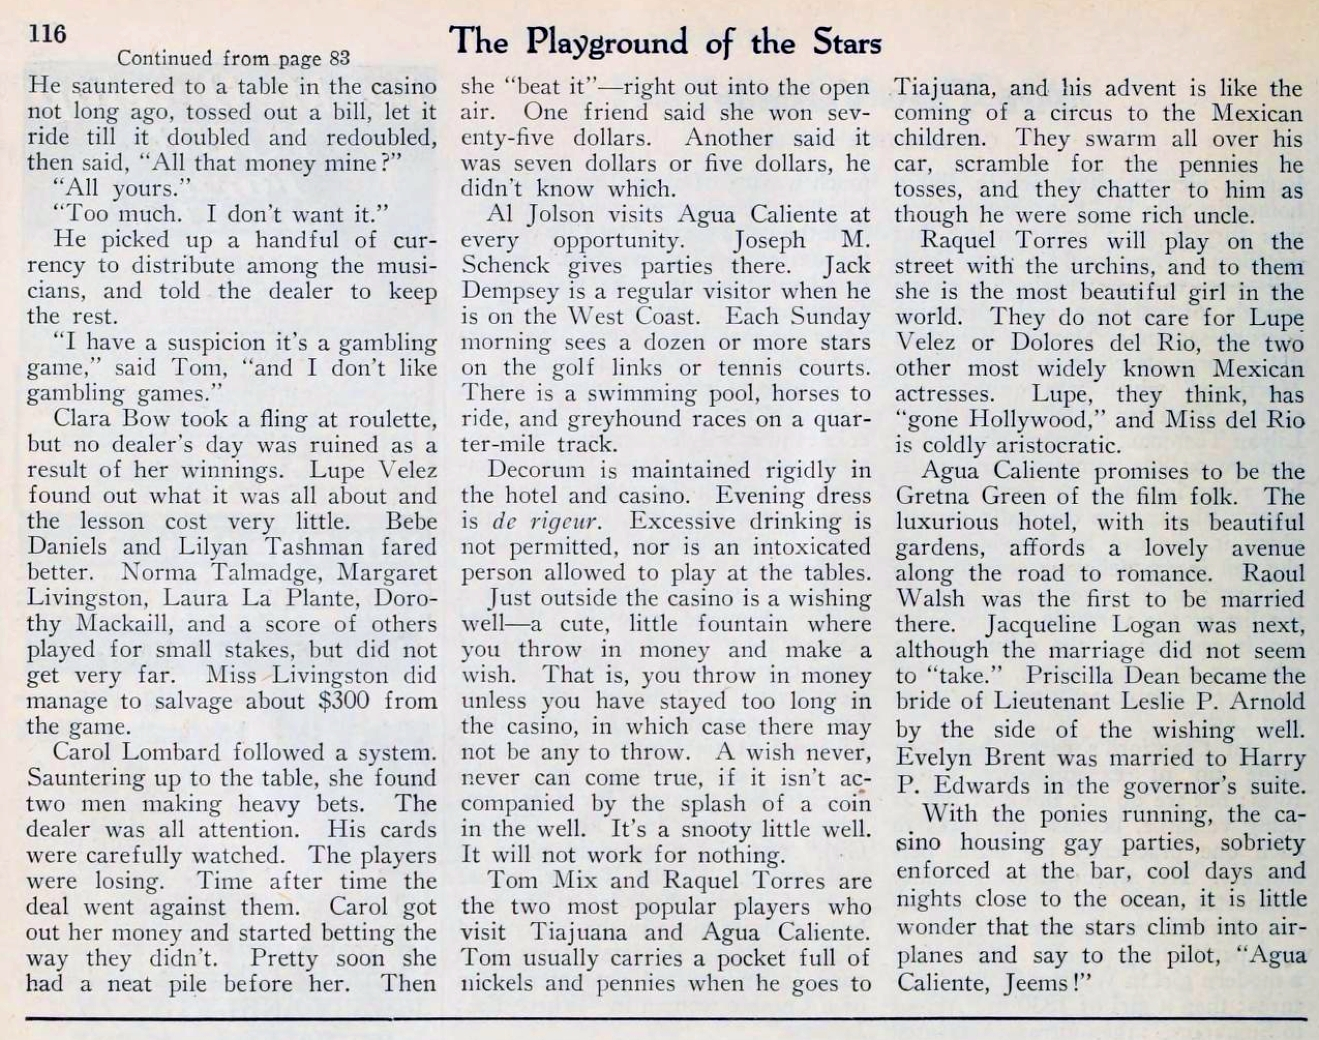 carole lombard picture play jan 1930 the playground of the stars 01a